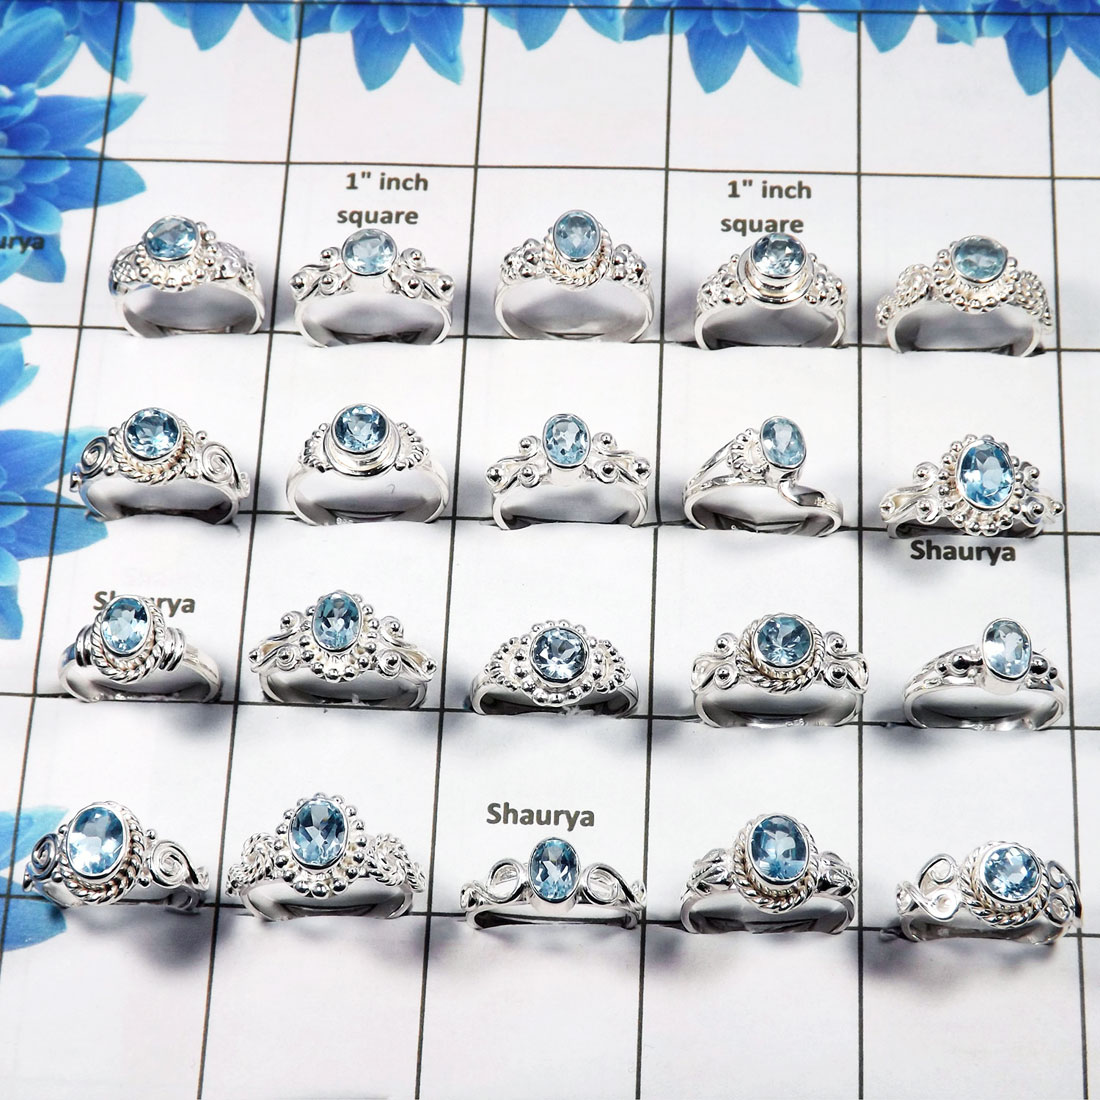 WSLR888-Faceted Blue Topaz 925 Sterling Silver 100 Gram 30 to 33 Pcs Wholesale Ring Lot